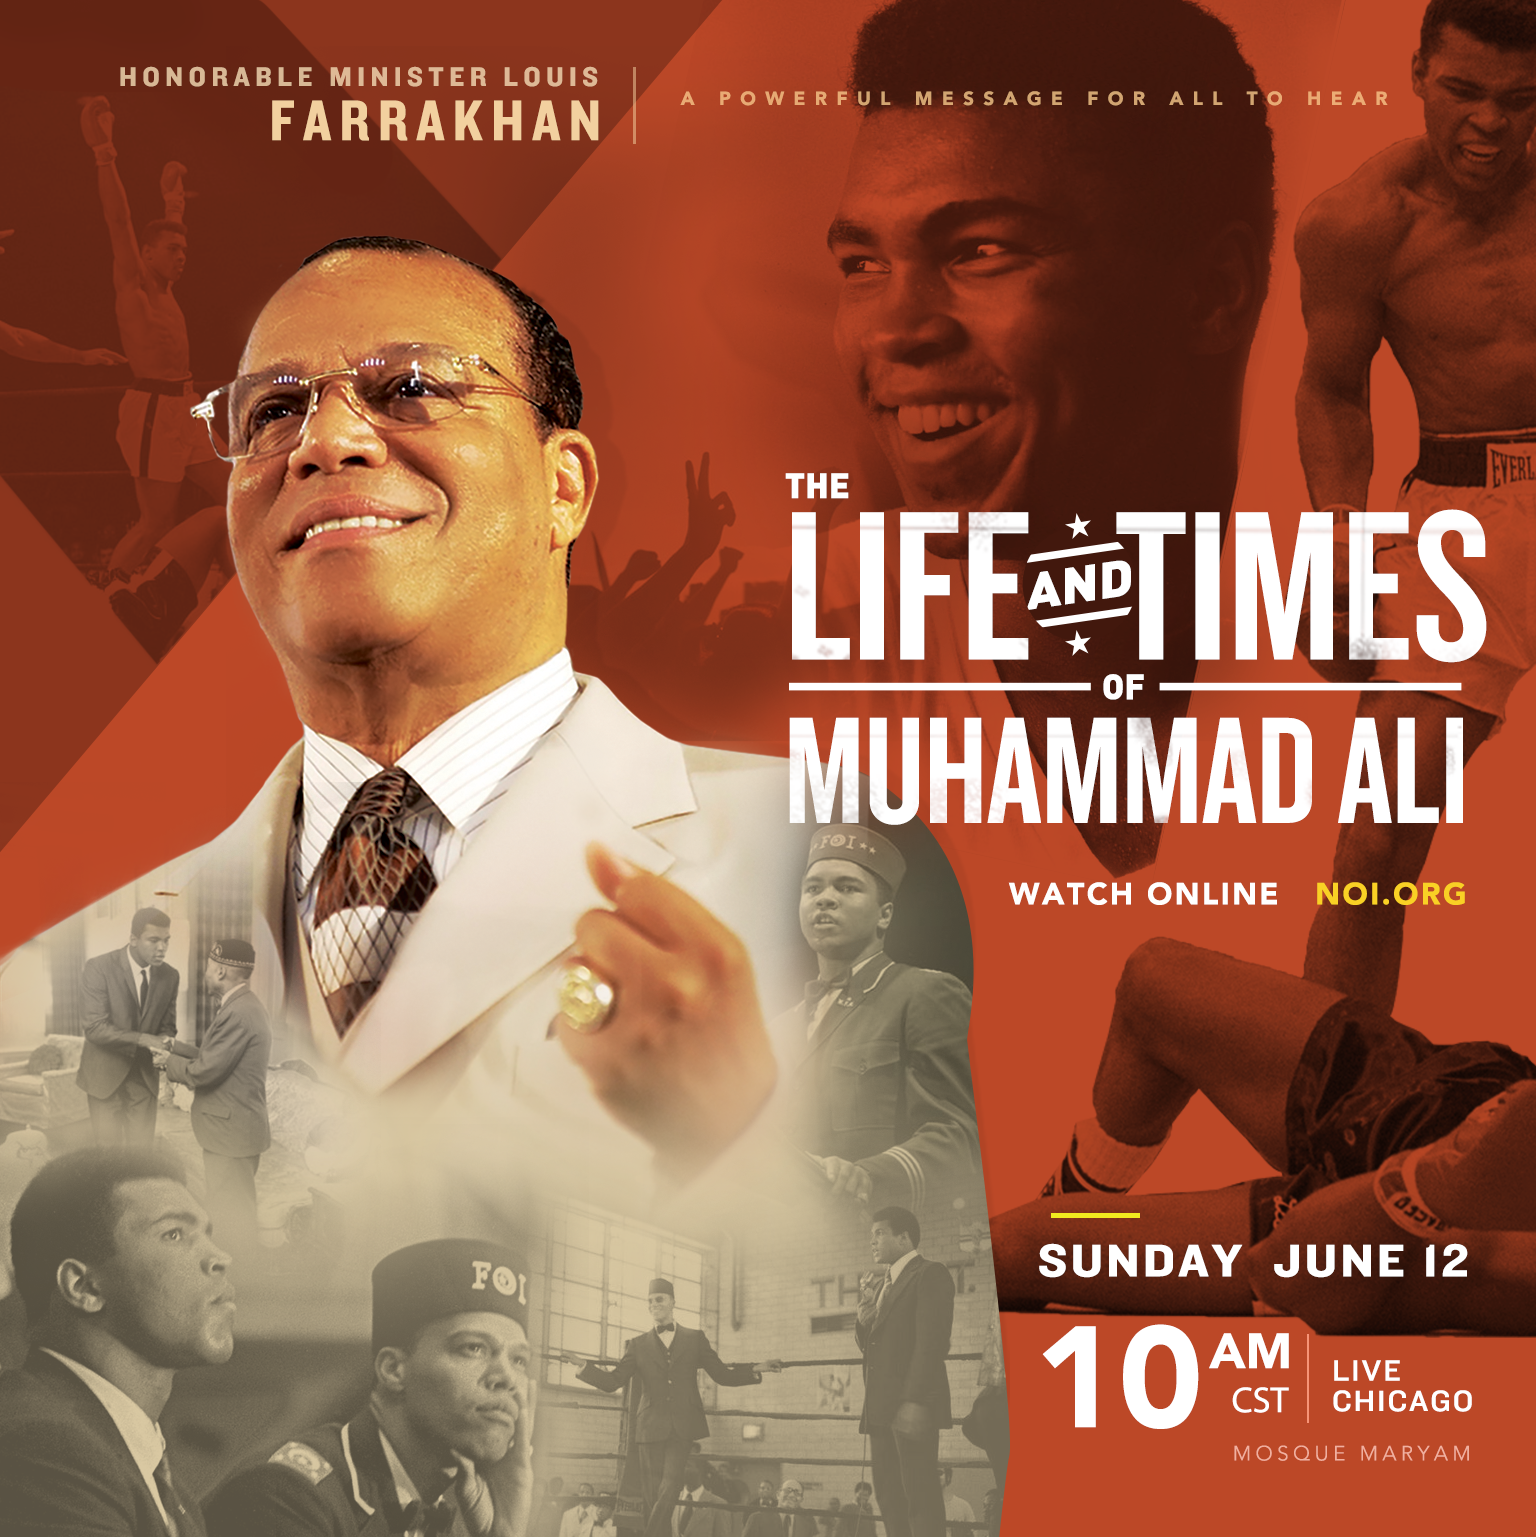 Minister Louis Farrakhan Speaks: The Life and Times of Muhammad Ali